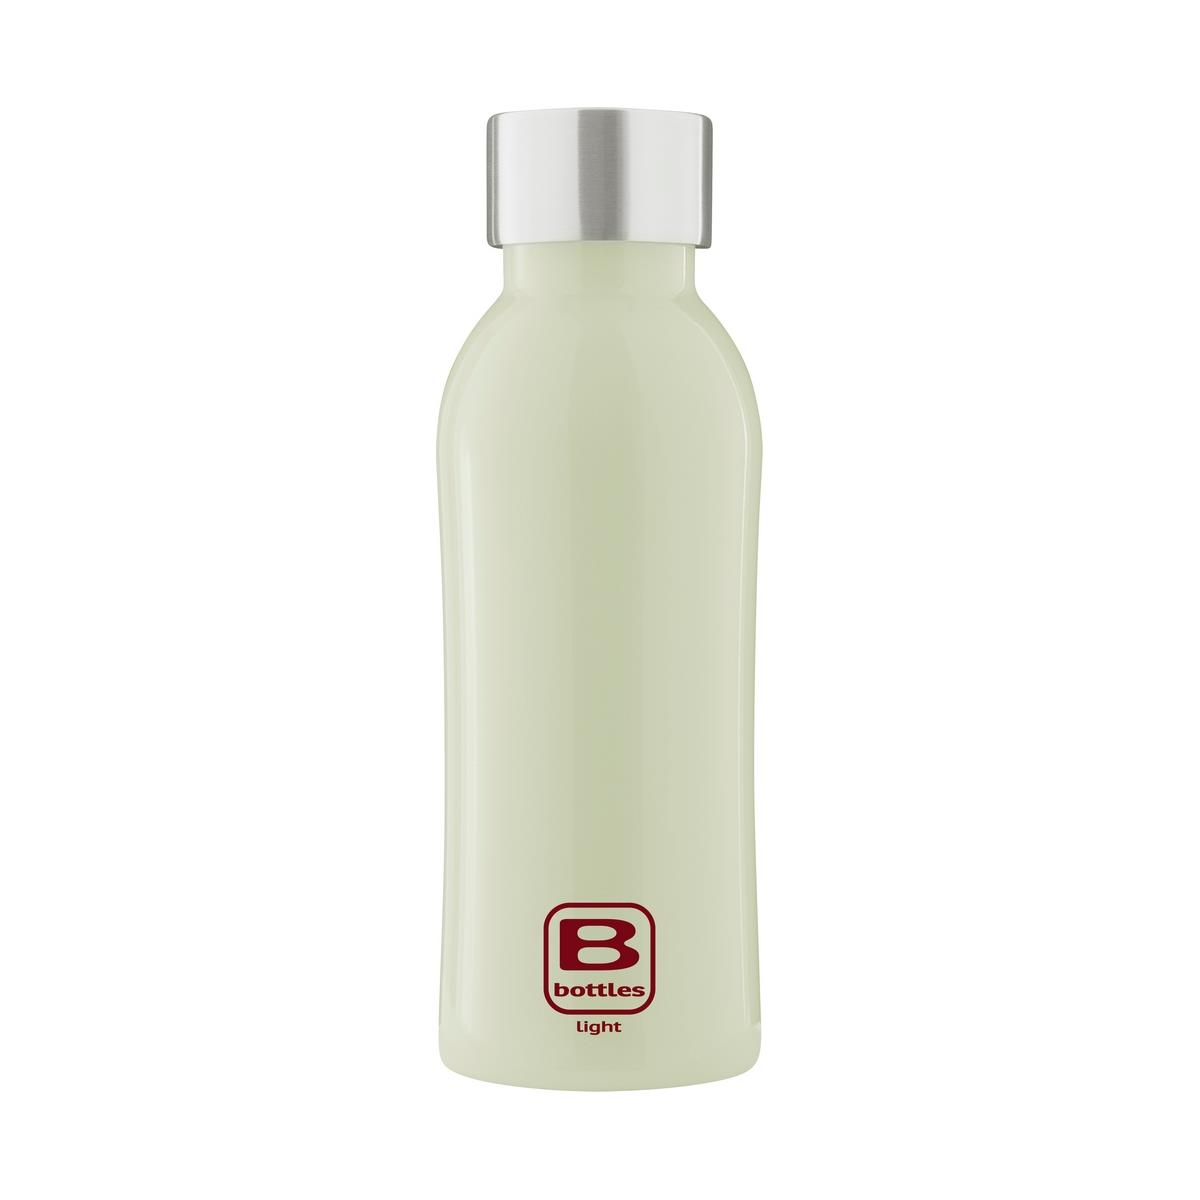 photo B Bottles Light - Light Green - 530 ml - Bottiglia in acciaio inox 18/10 ultra leggera e compatta